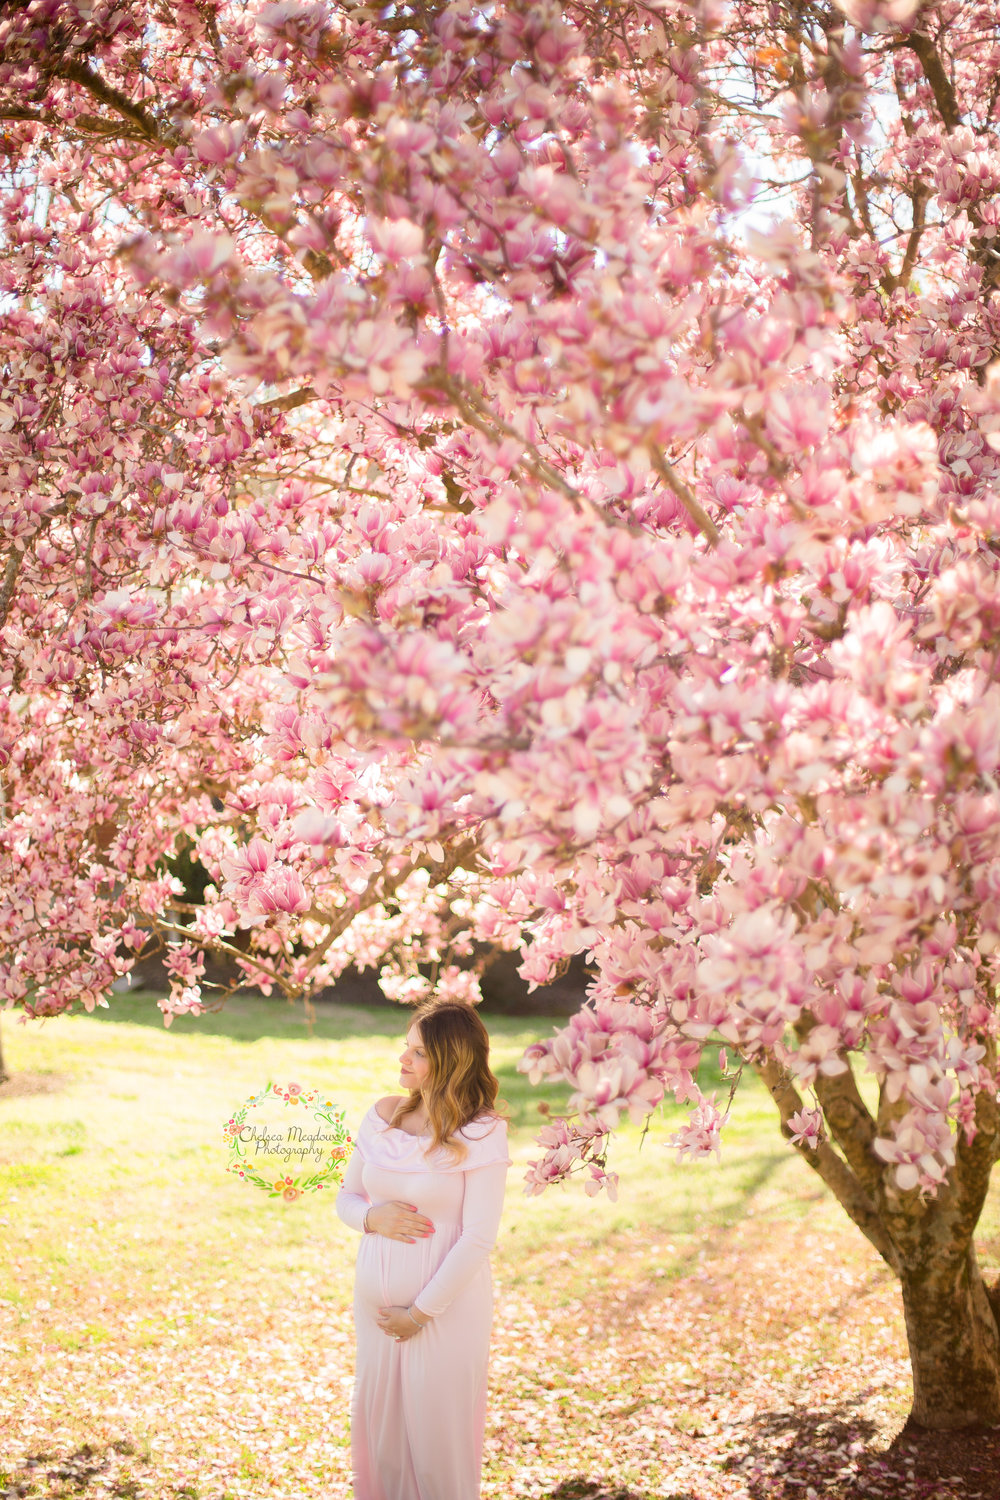 Nicole Spring Maternity Session - Nashville Maternity Photographer - Chelsea Meadows Photography (34)_edited-1.jpg